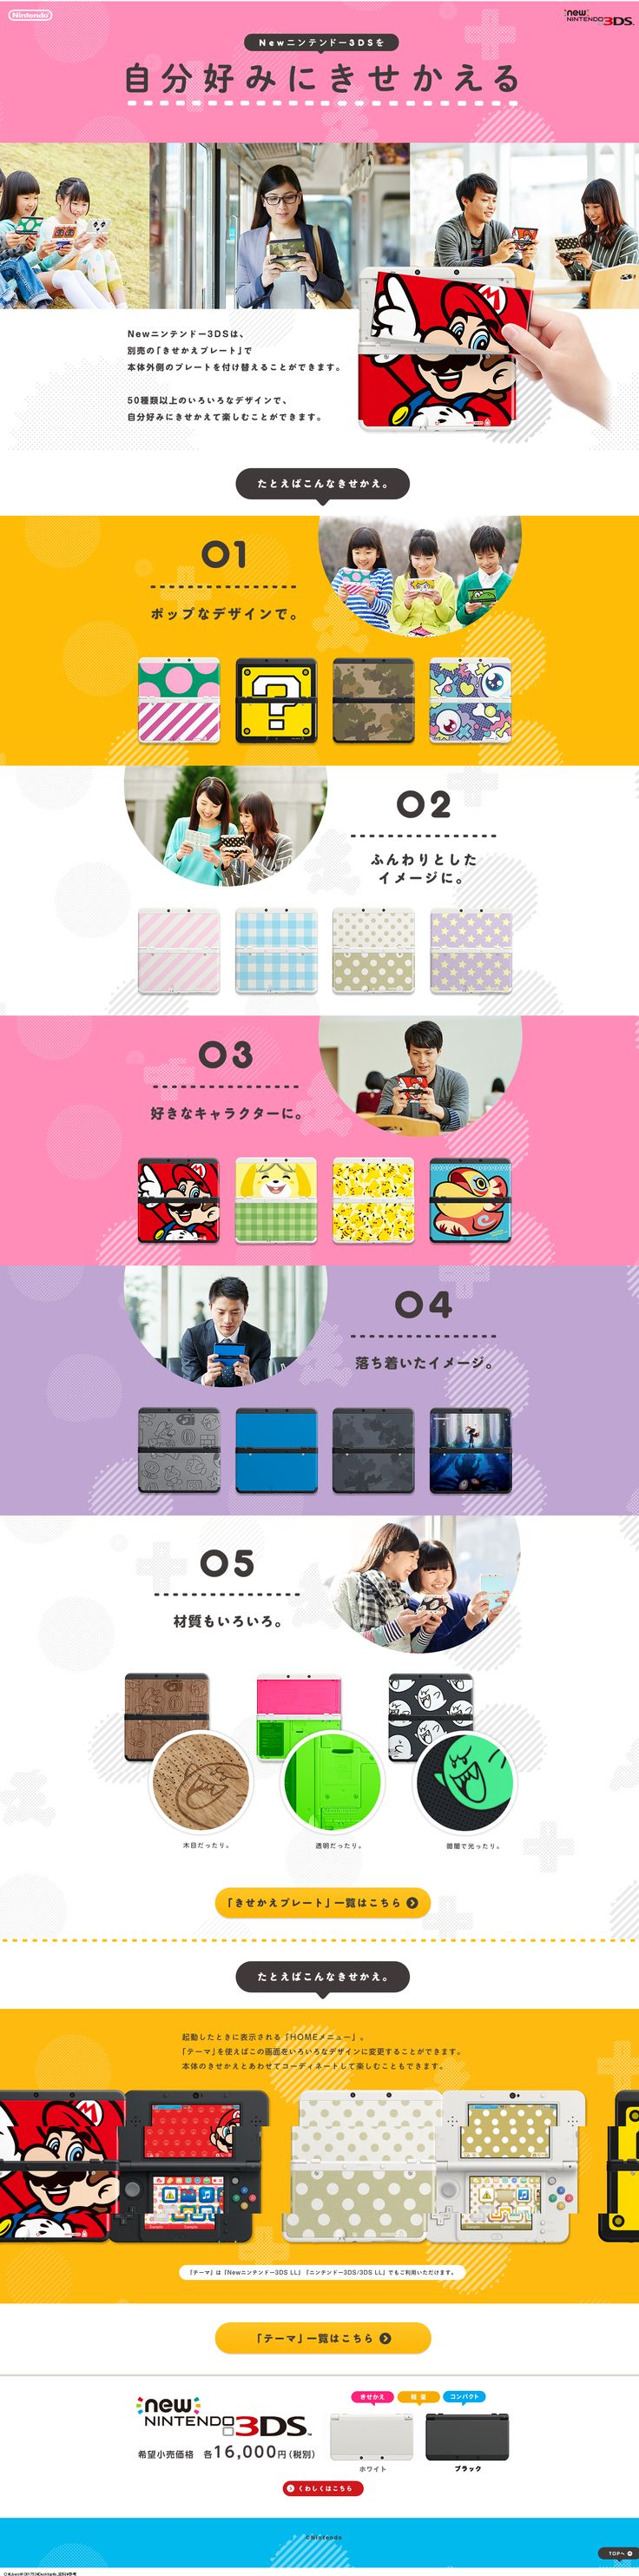 http://www.nintendo.co.jp/3ds/change_plate/index.html